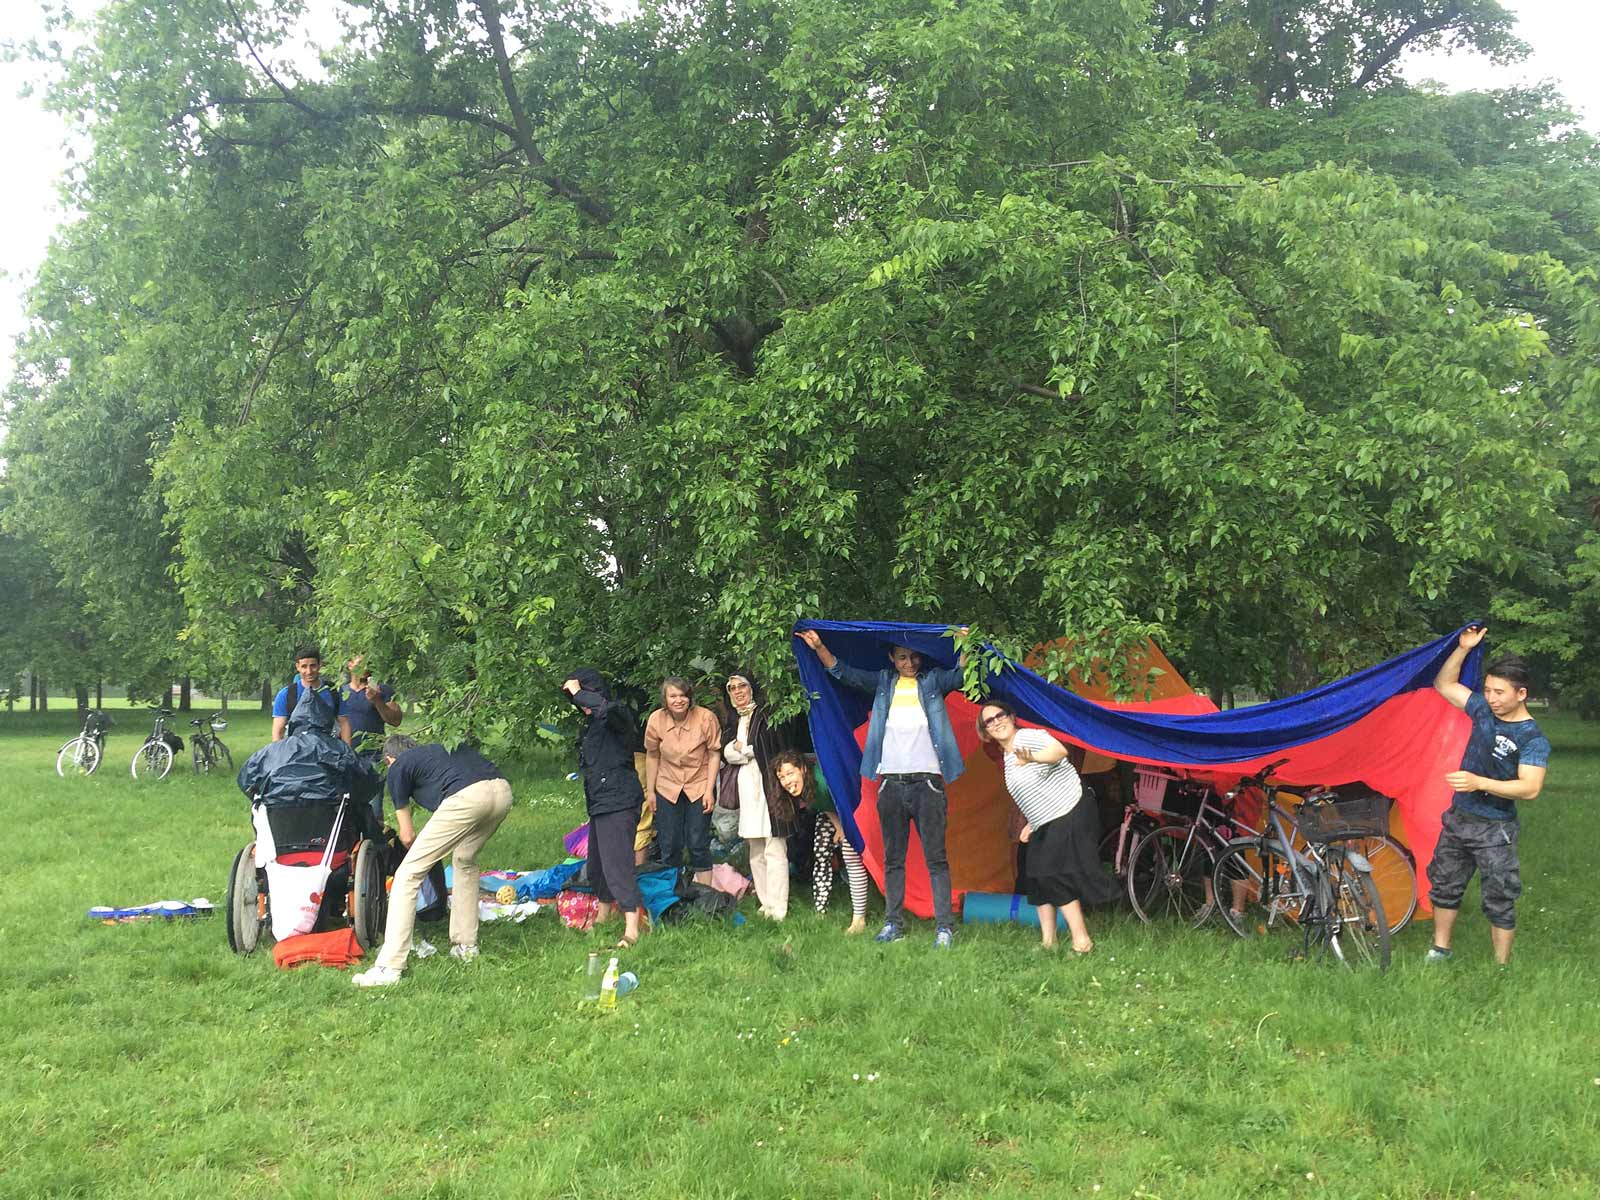 Station Wien Picknick Jesuitenwiese 2016